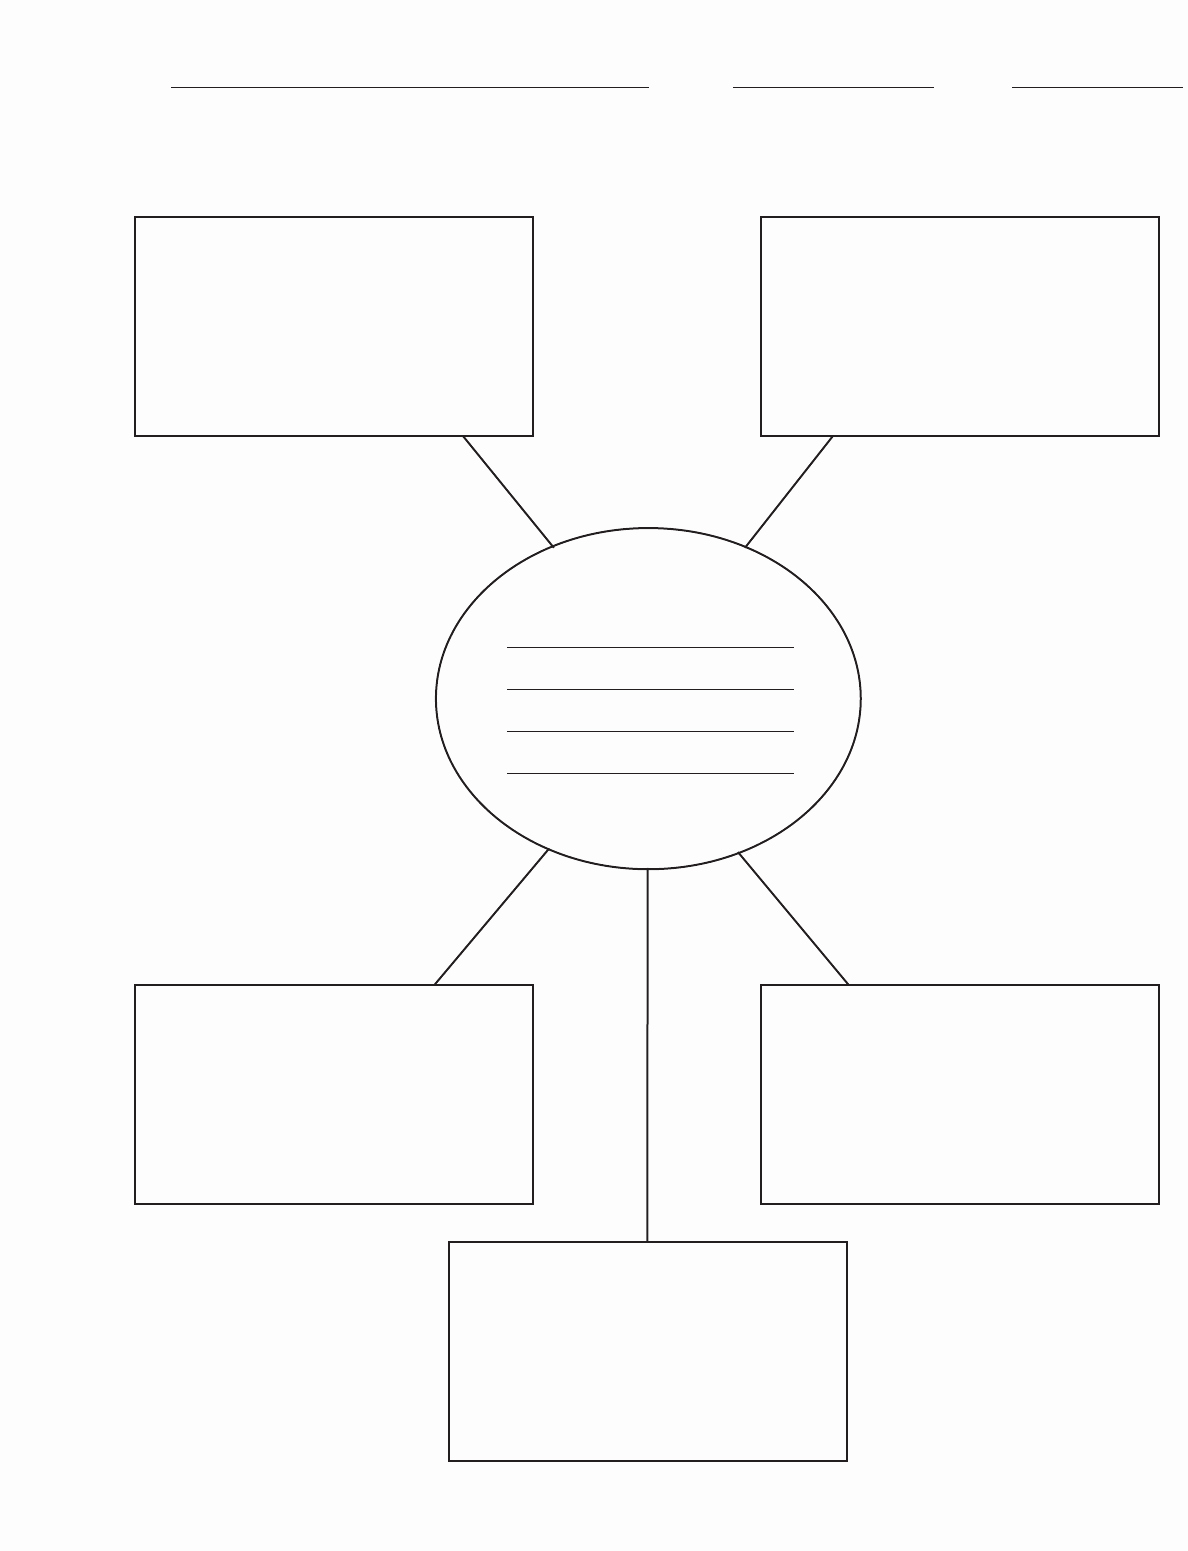 Blank Concept Map Template Elegant Free Mind Map Templates Designed to Help You Practice Mind